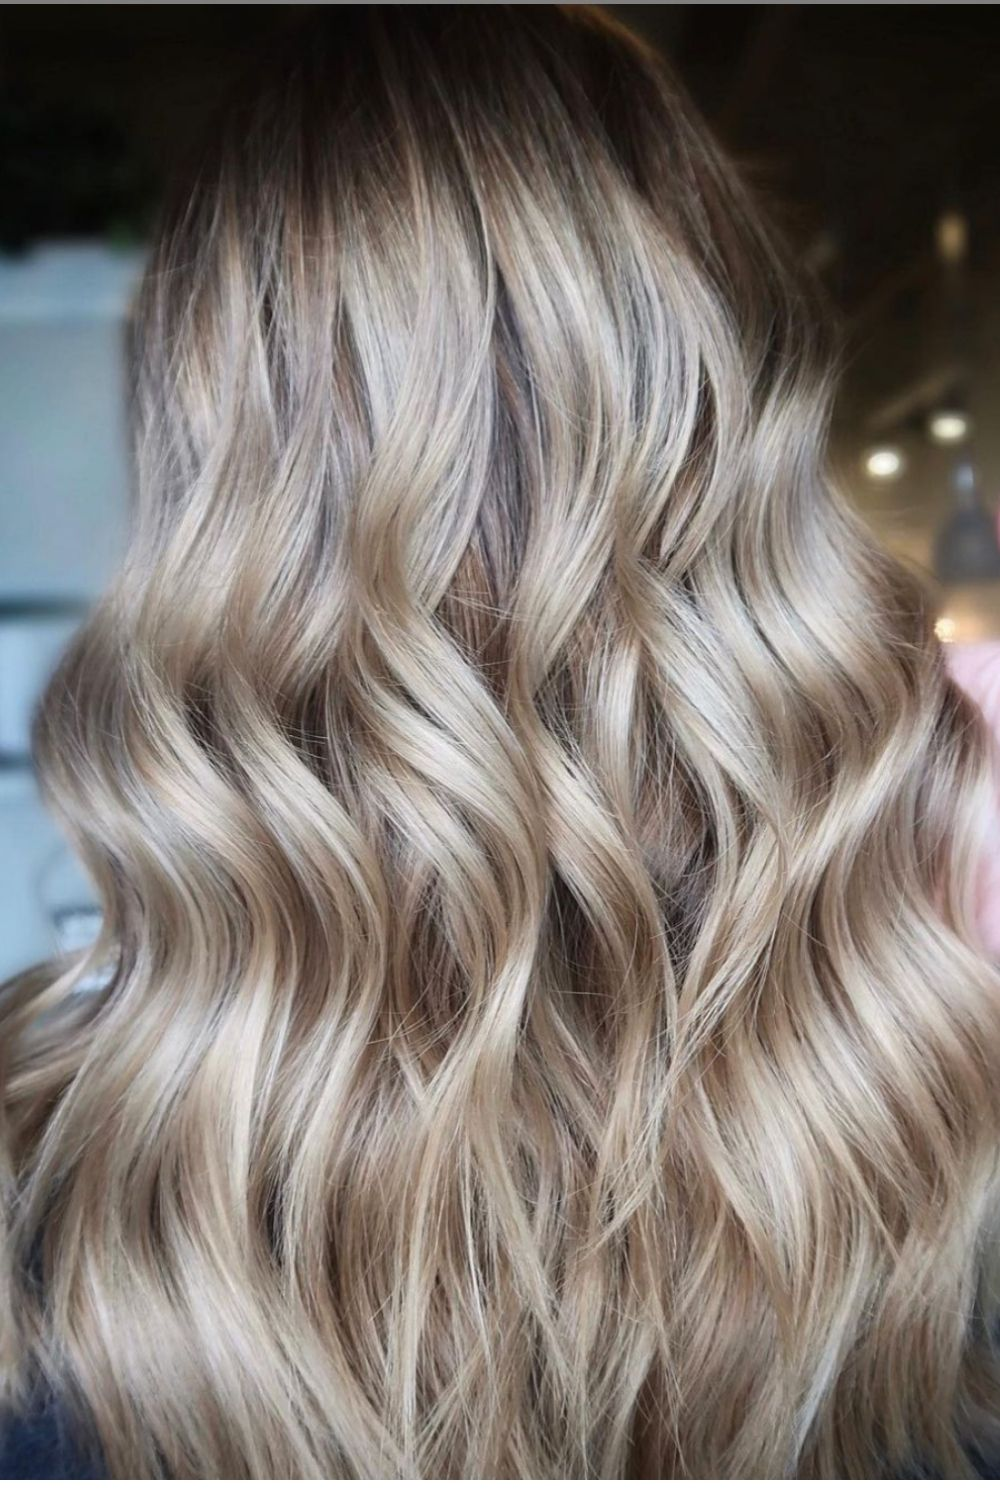 36 Best Fall hair color trends 2021 ideas to get inspired